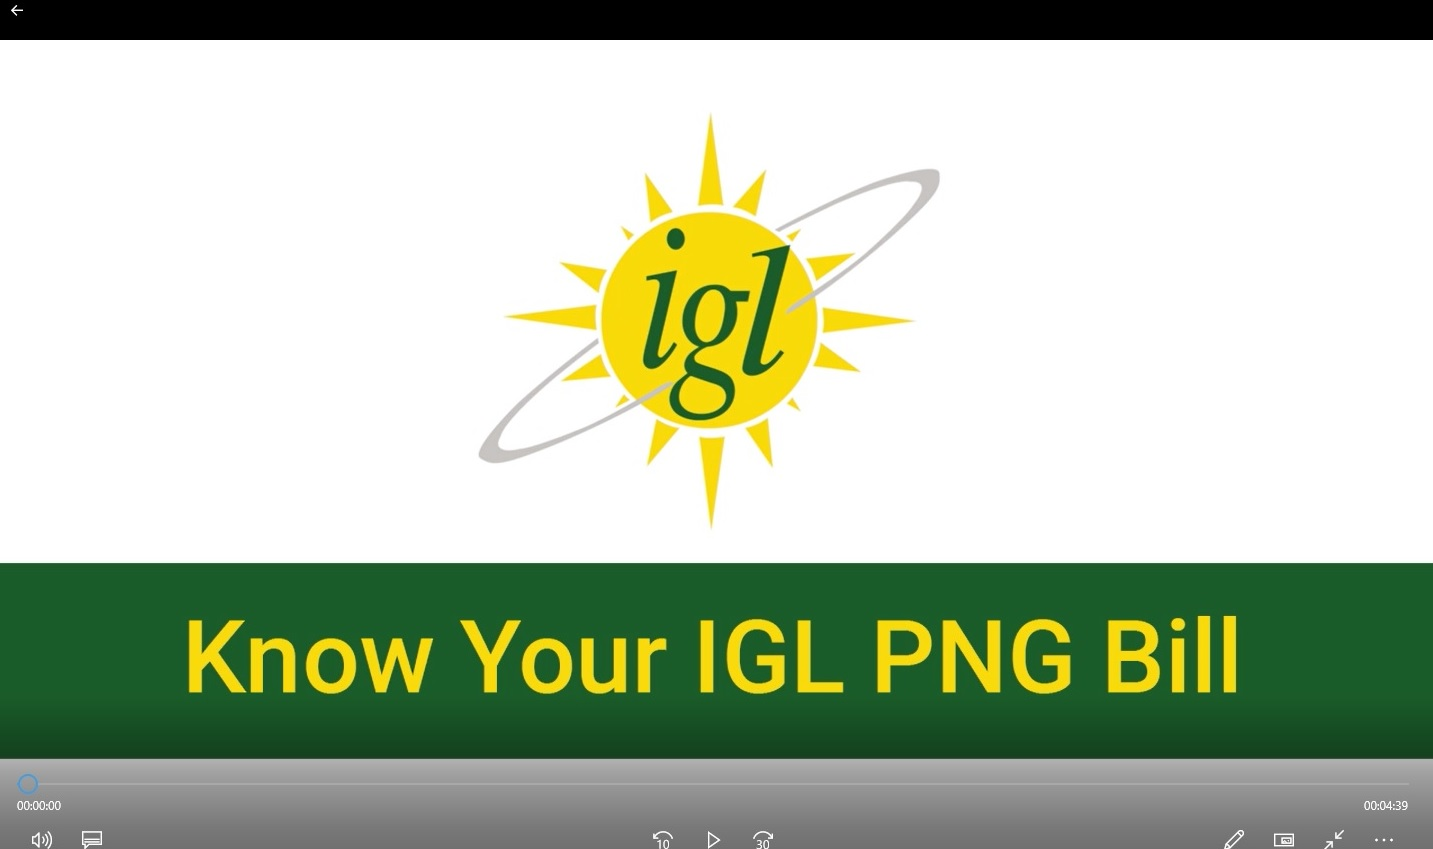 Know Your IGL PNG Bill